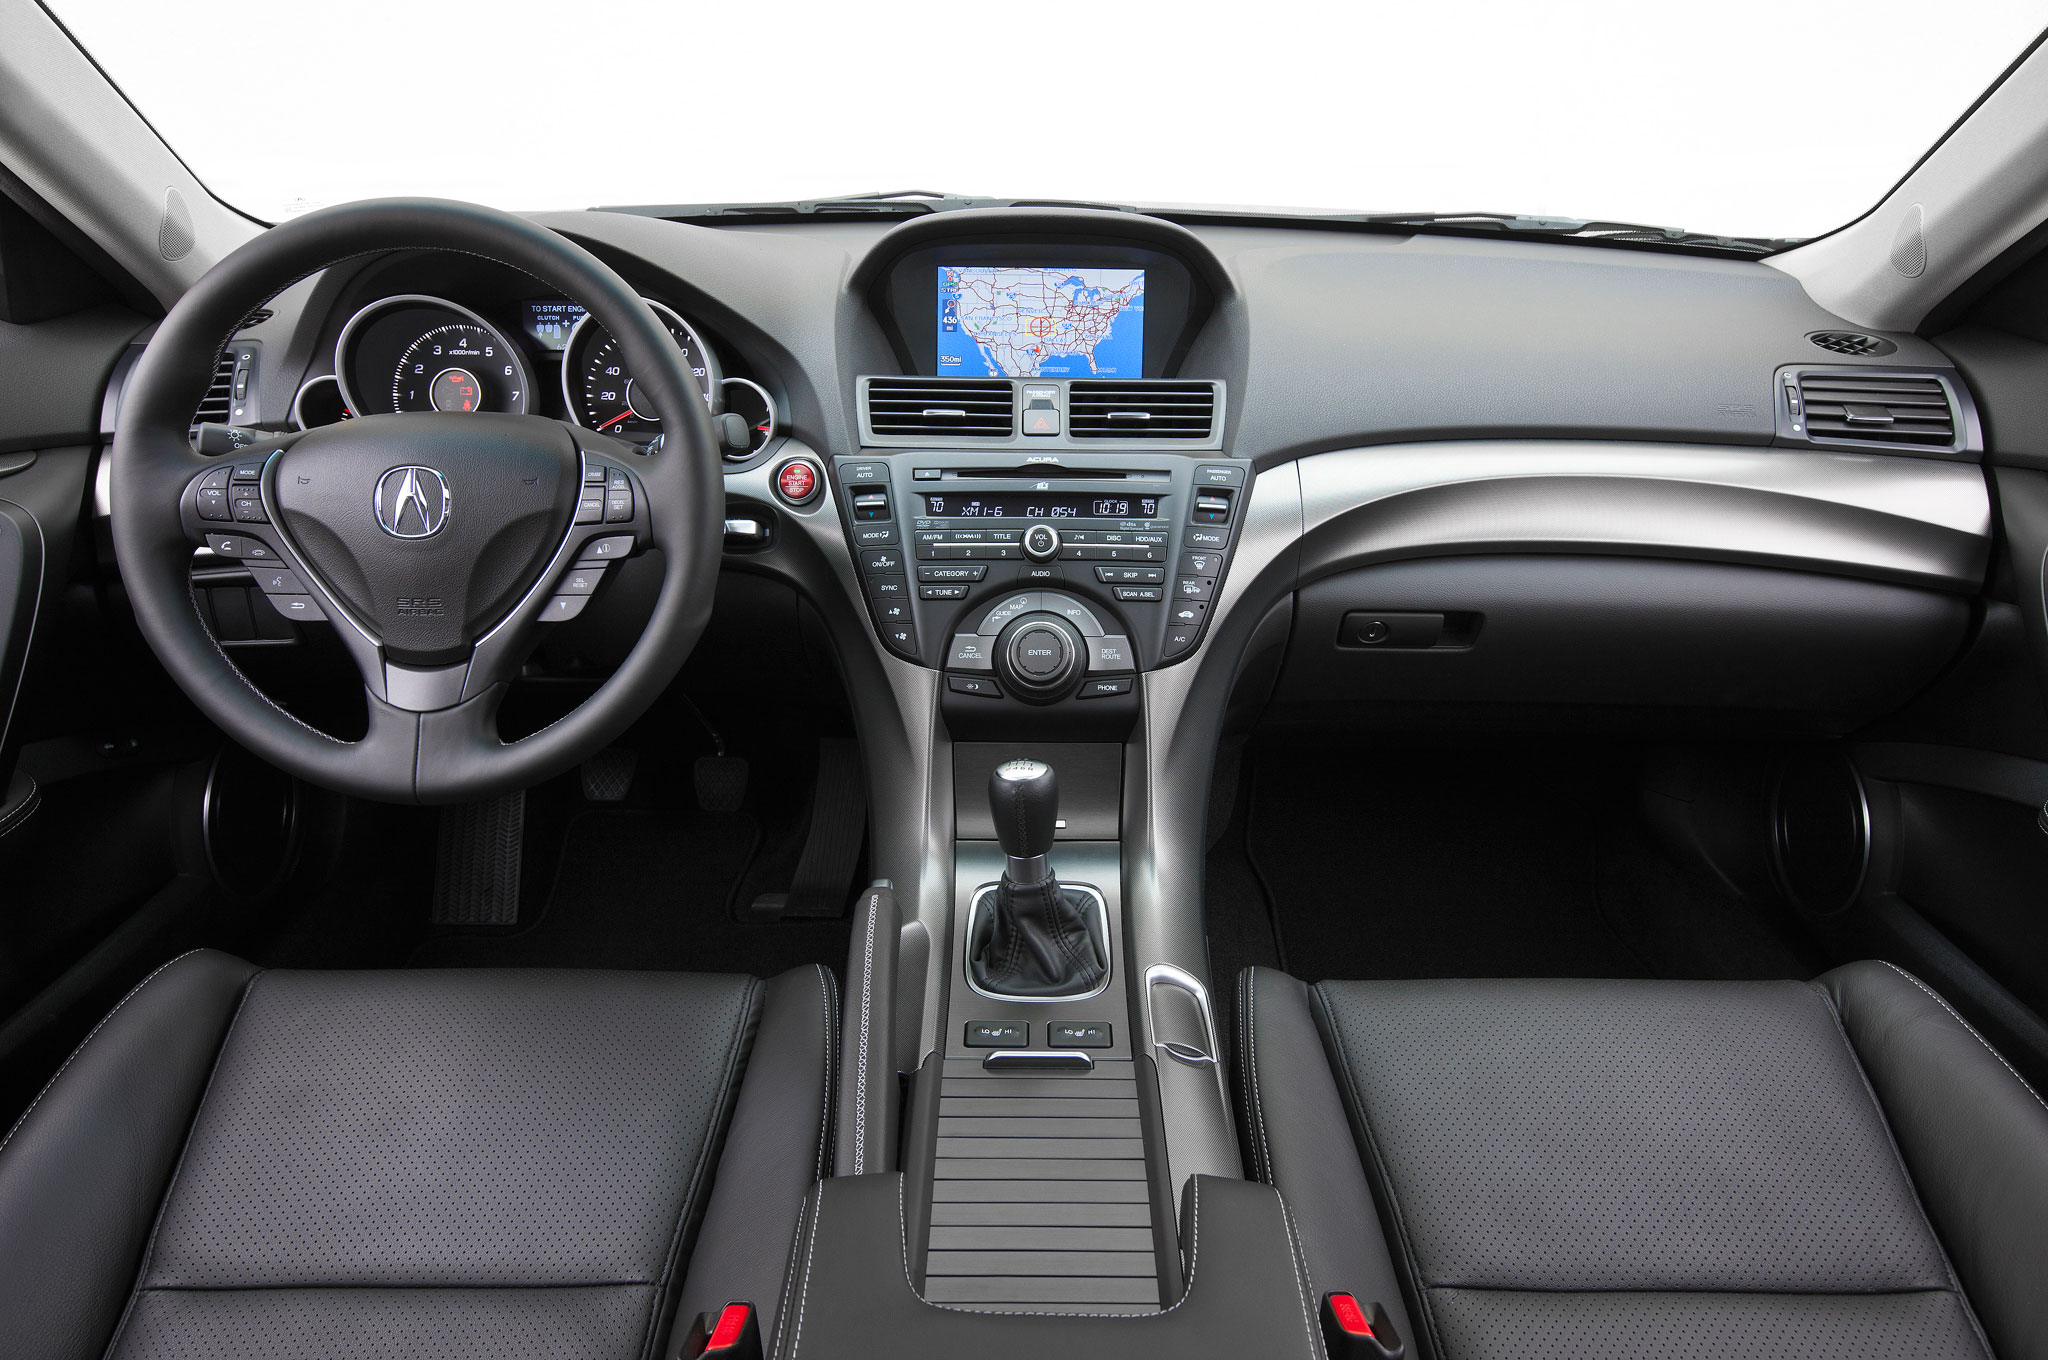 Acura Releases Pricing on 2013 TL ManualTransmission Model